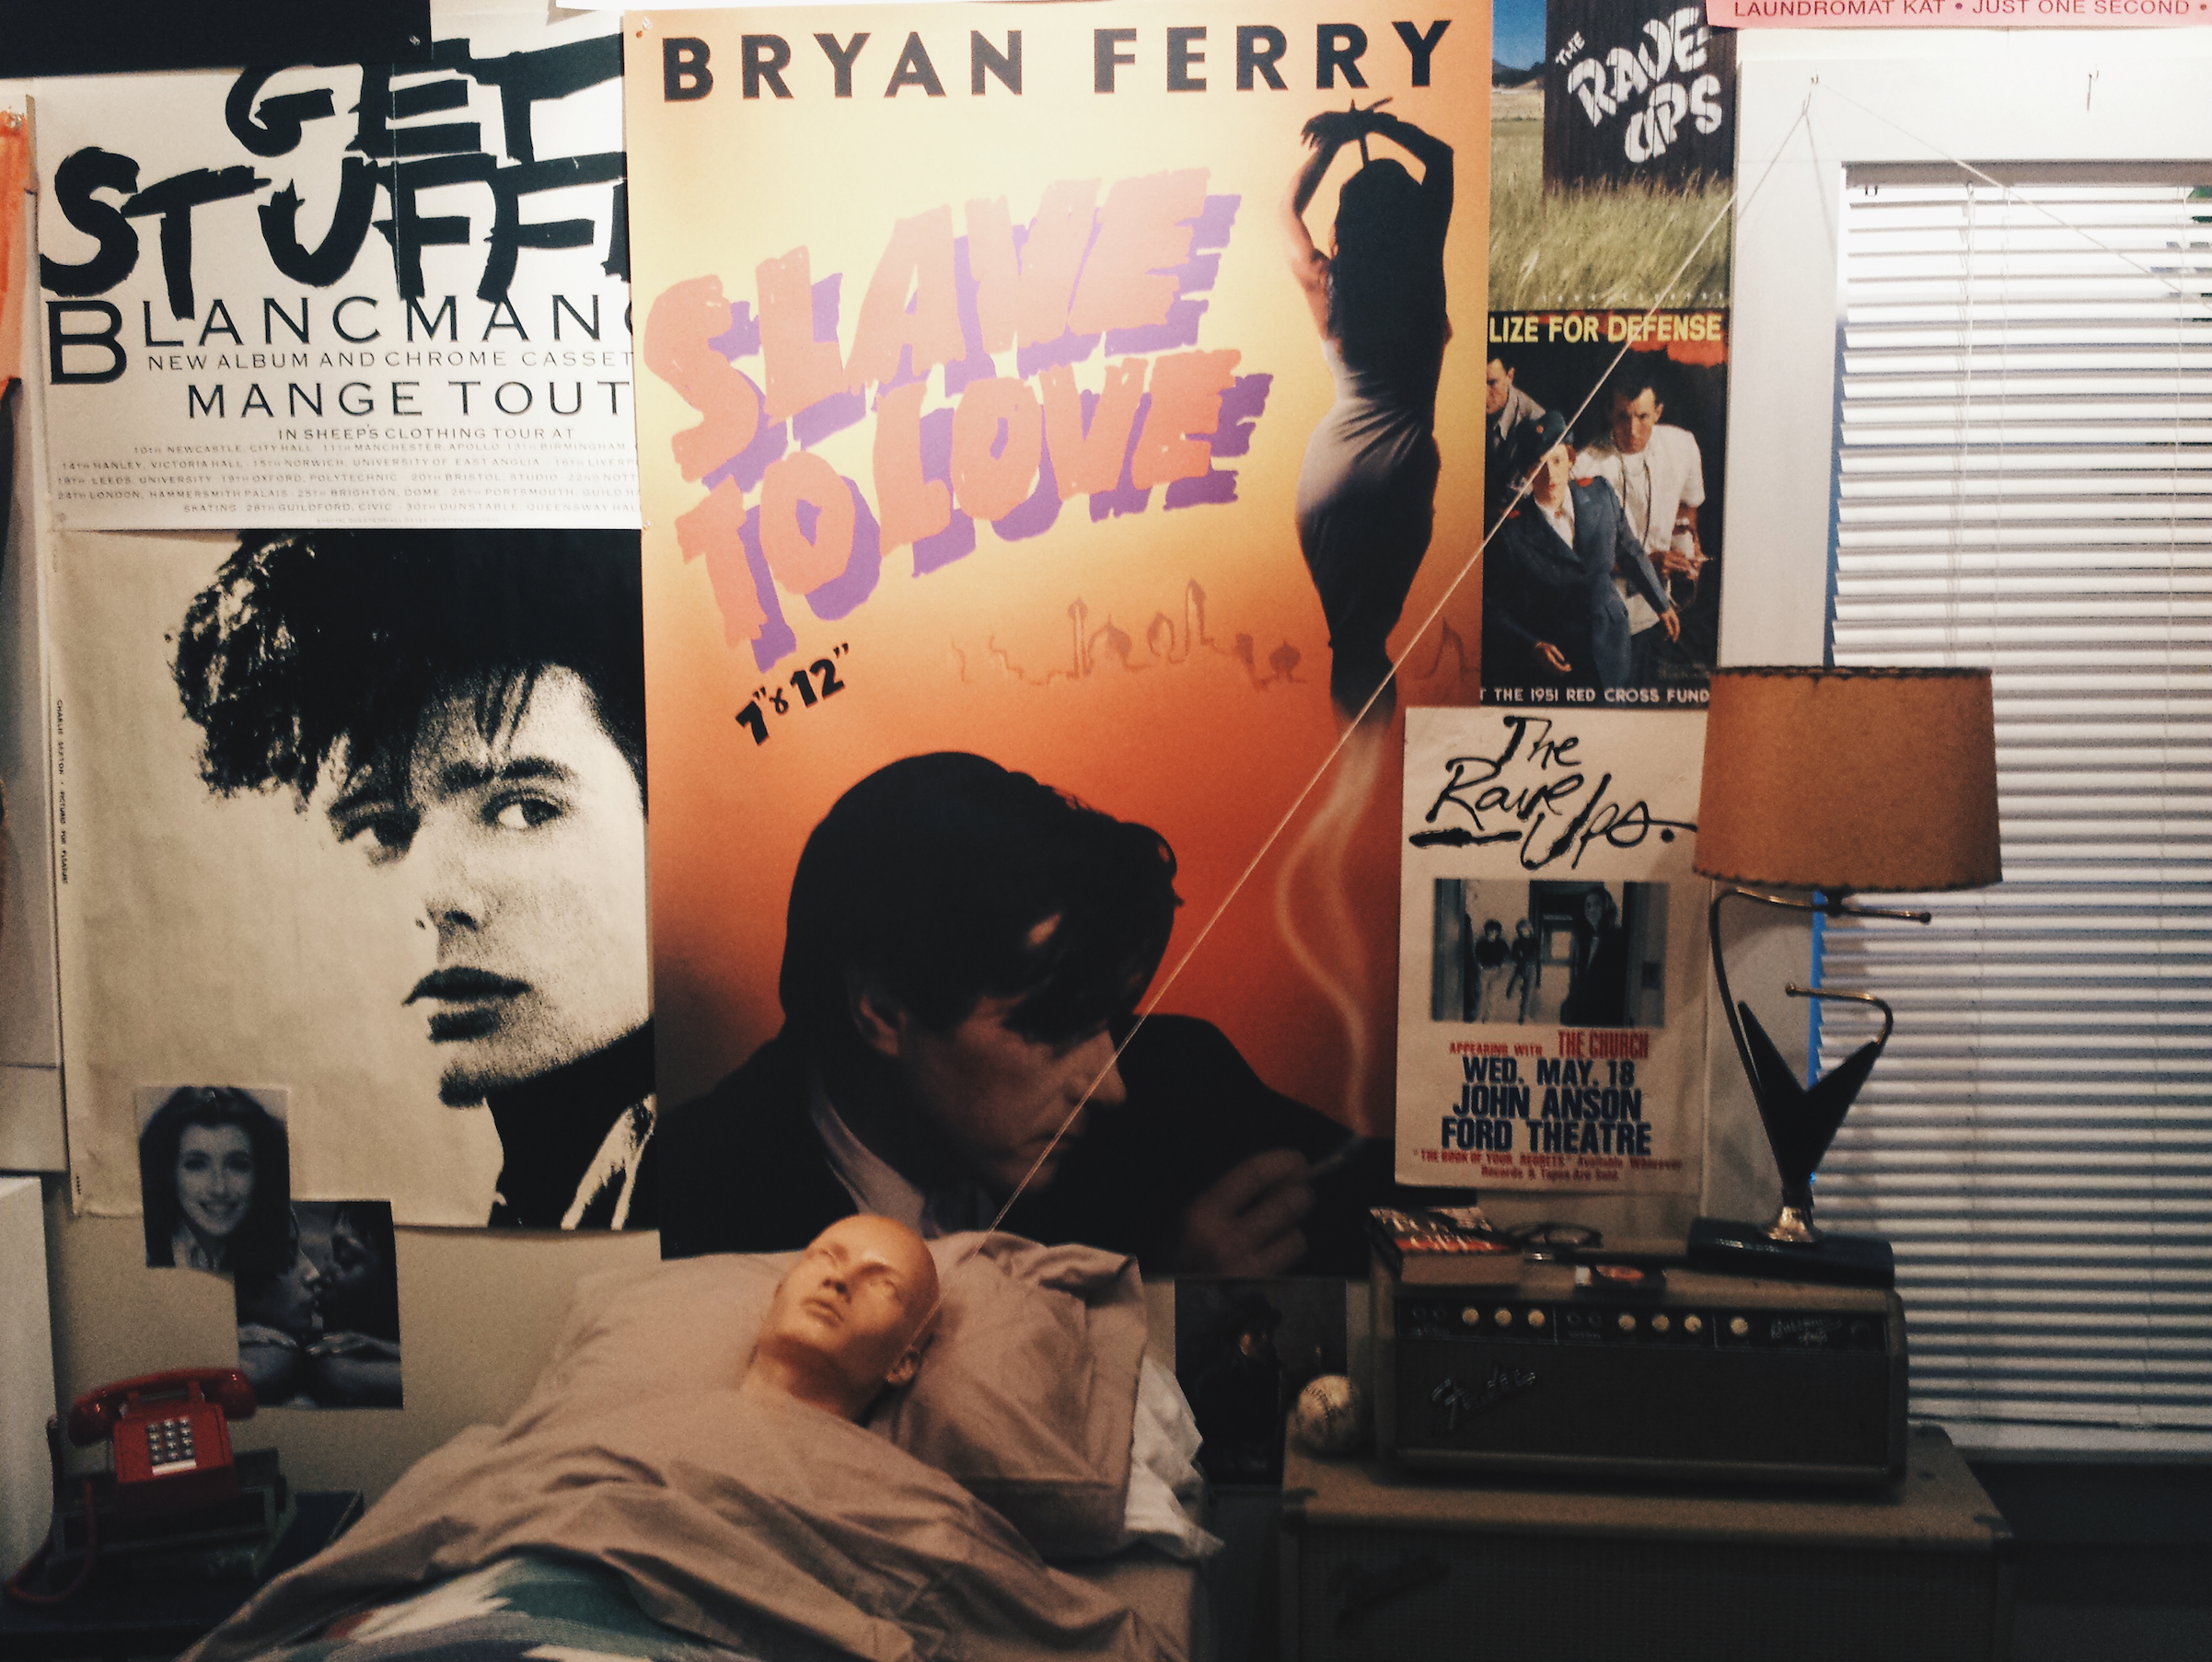 A replica of Ferris Bueller's room including the dummy he uses in his room and posters on his wall